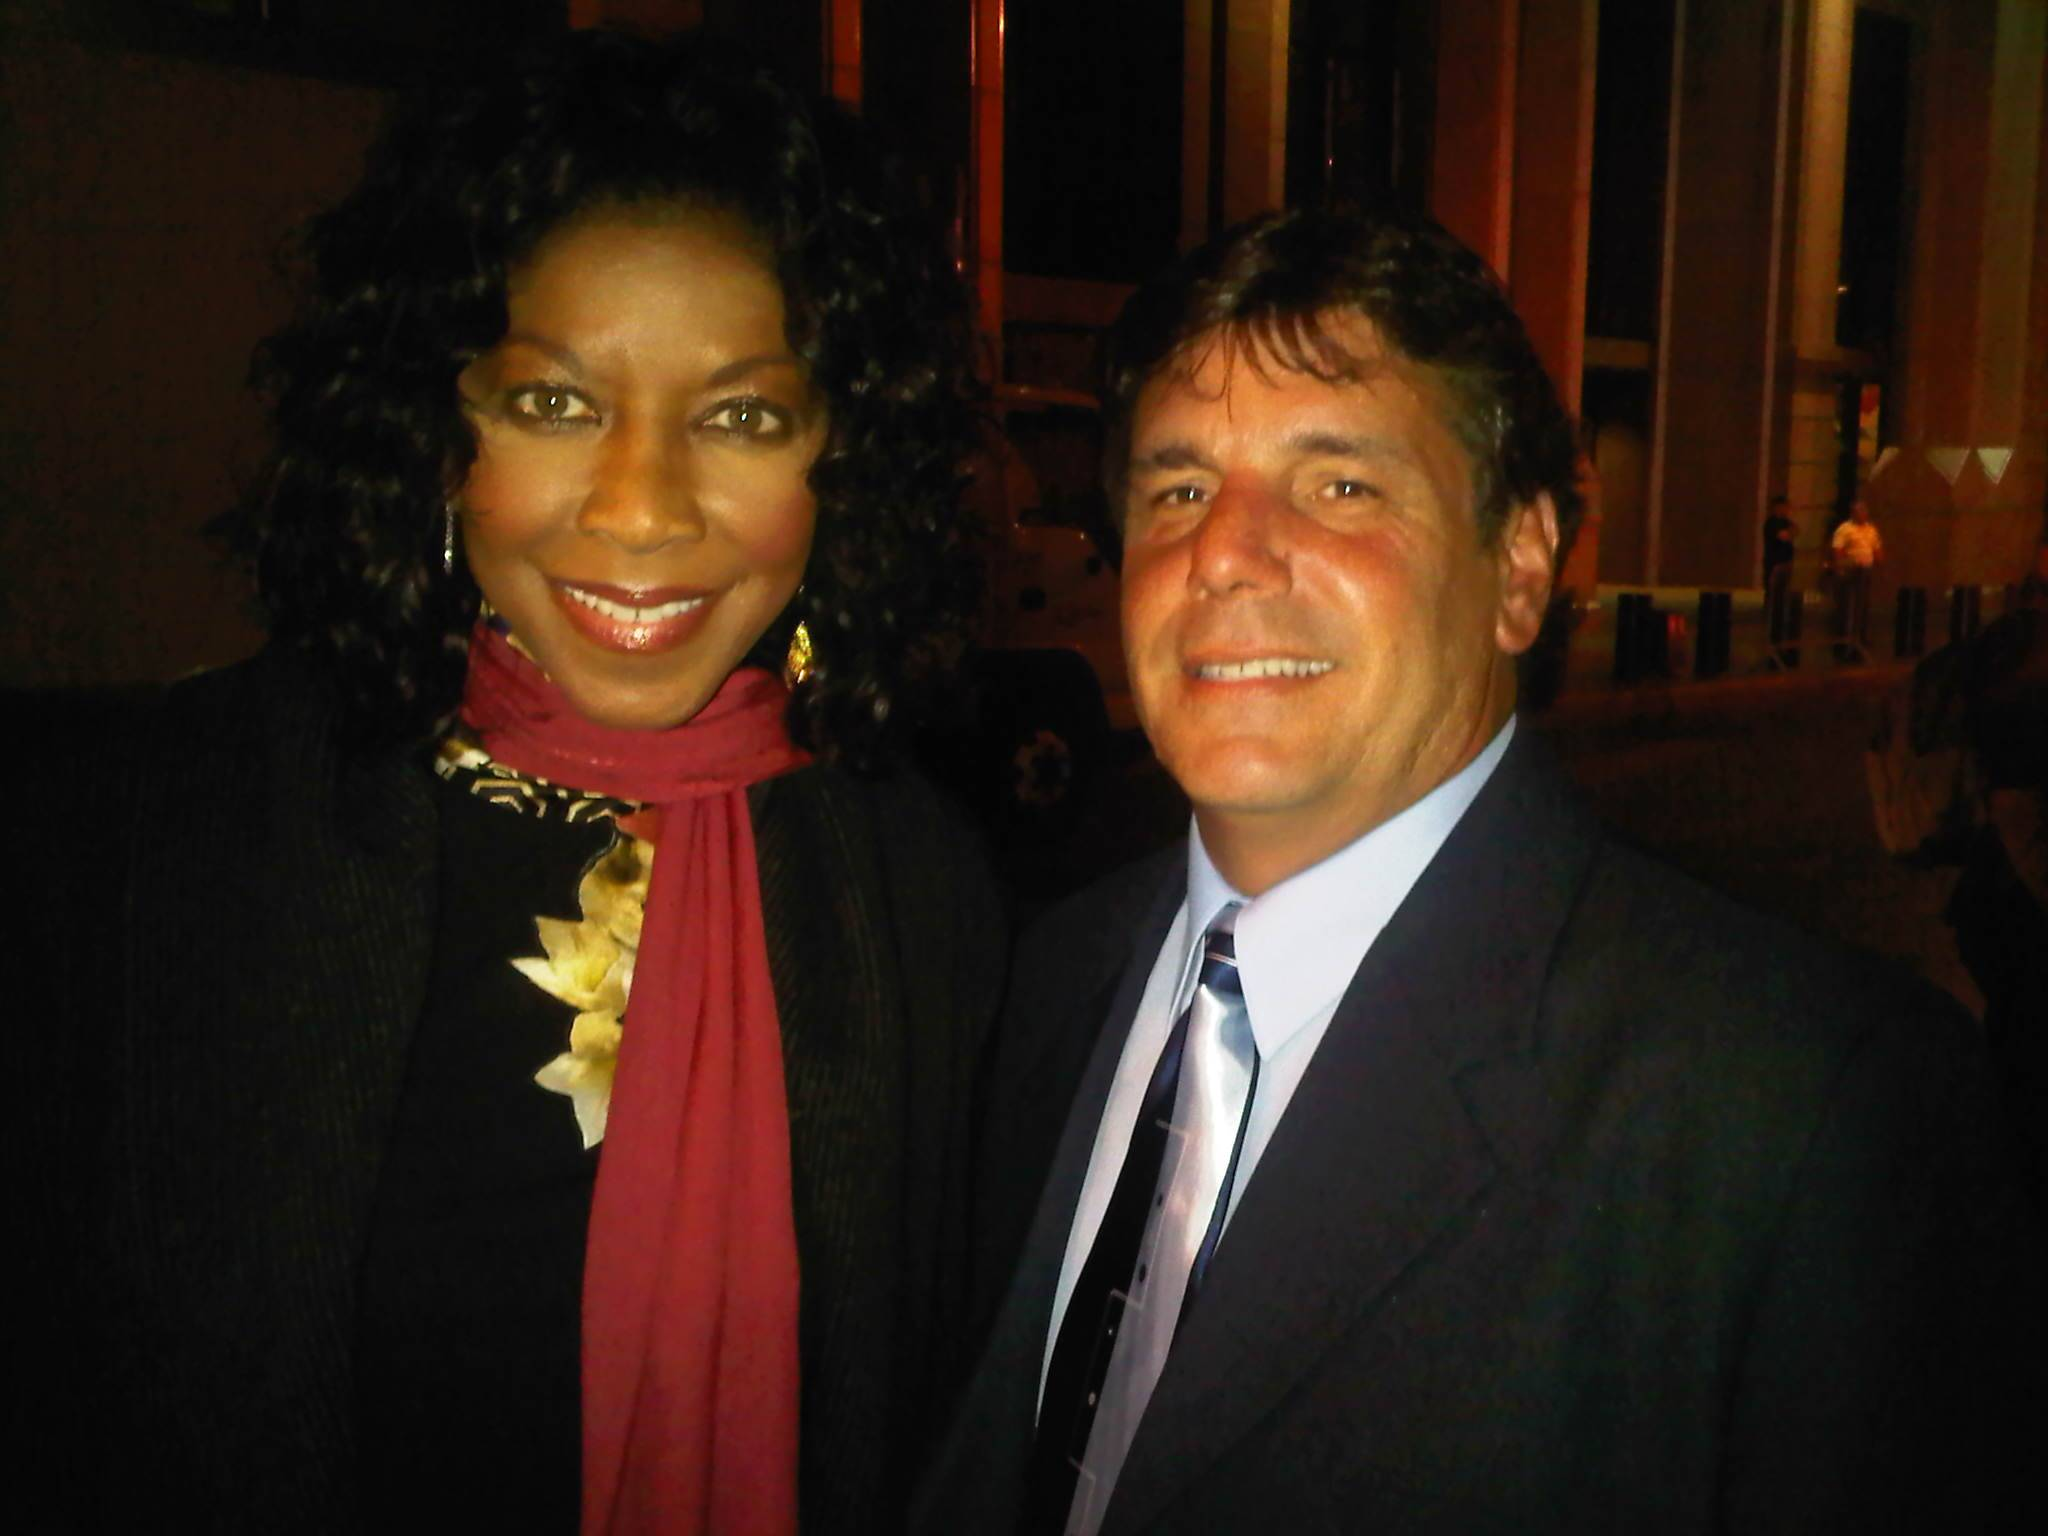 Chuck Aiesi & Natalie Cole at Tony Bennetts dinner event